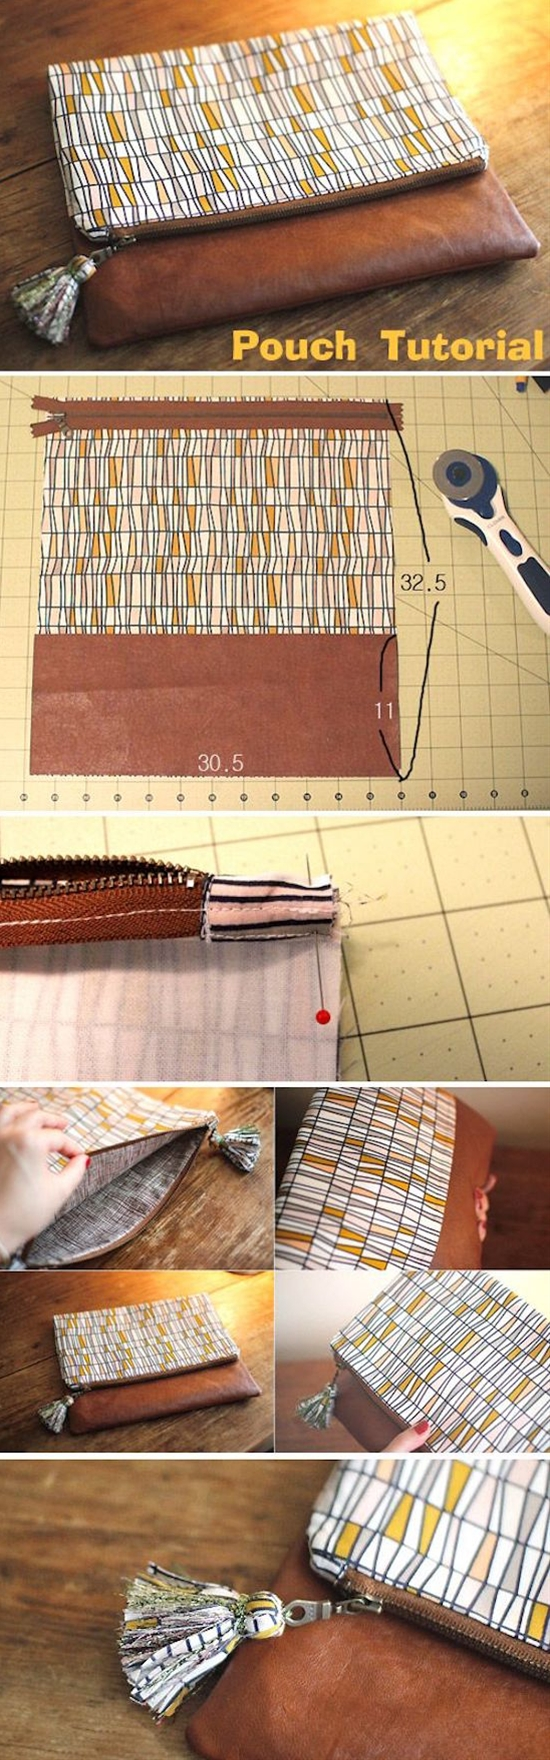 5 Easy Tutorials To Make Your Own Cute Purse